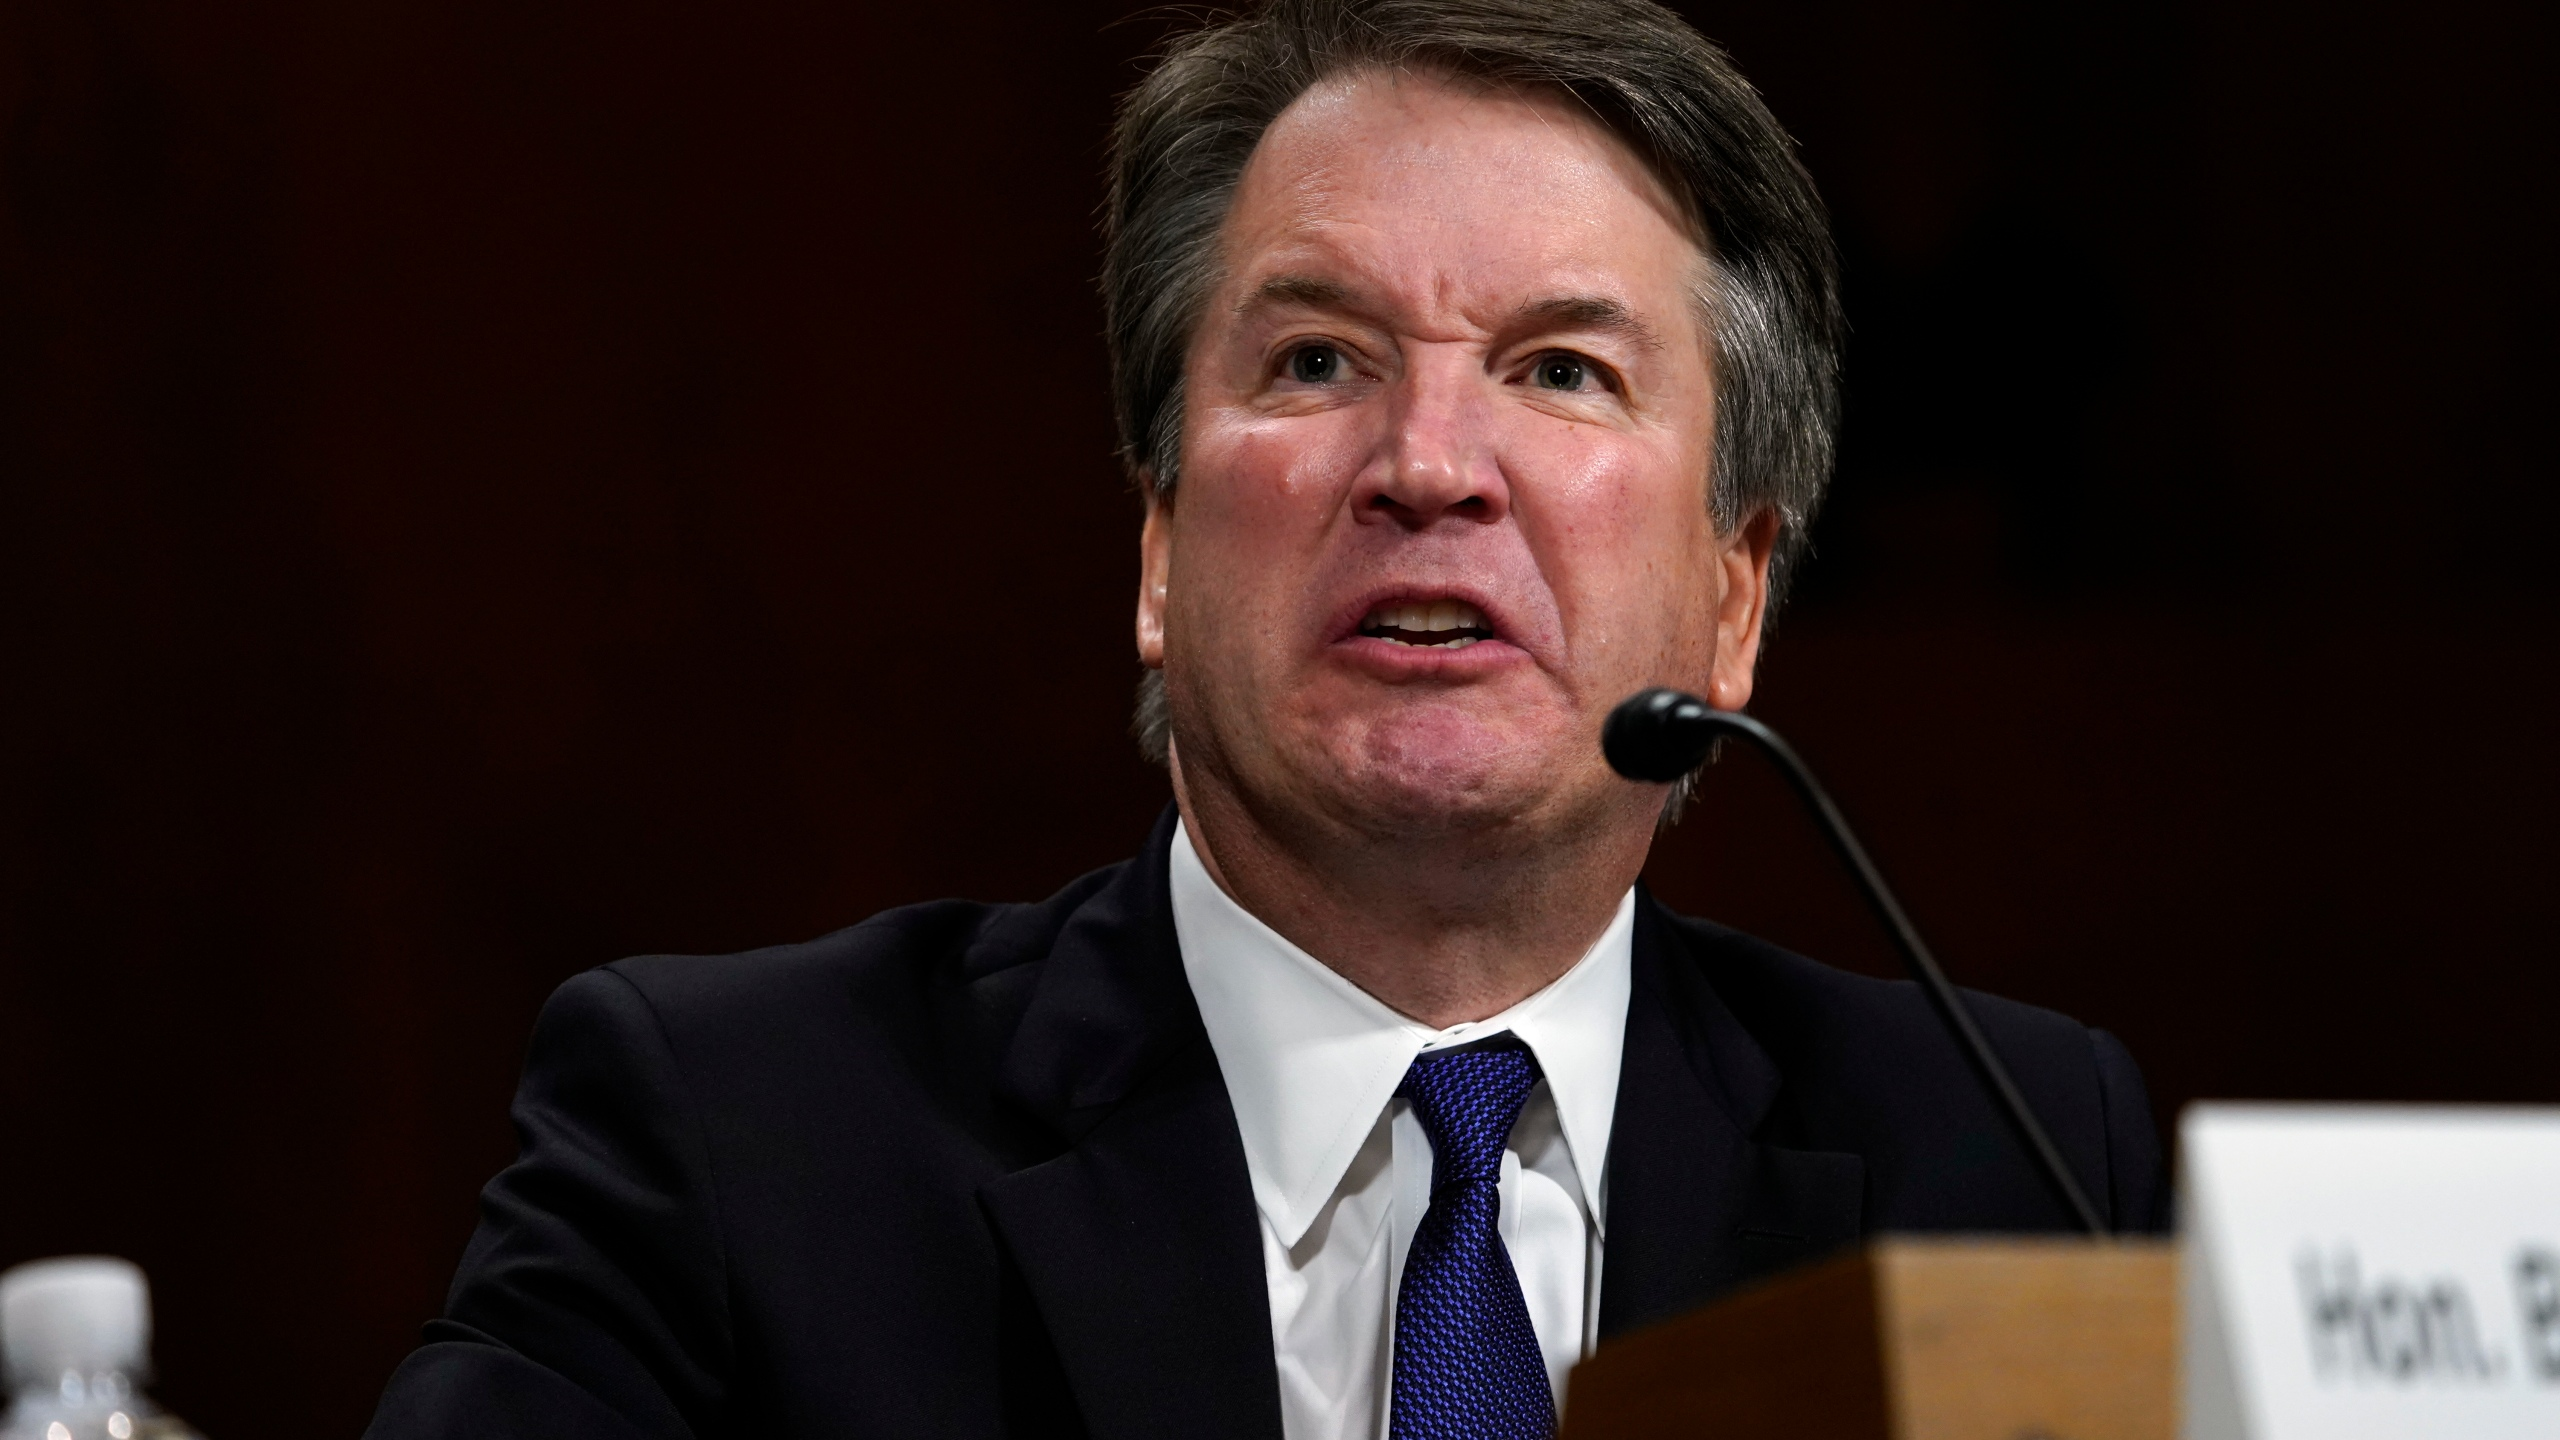 Supreme Court nominee Brett Kavanaugh testifies before the Senate Judiciary Committee on Capitol Hill on Sept. 27, 2018 in Washington, D.C. (Credit: Andrew Harnik - Pool/Getty Images)